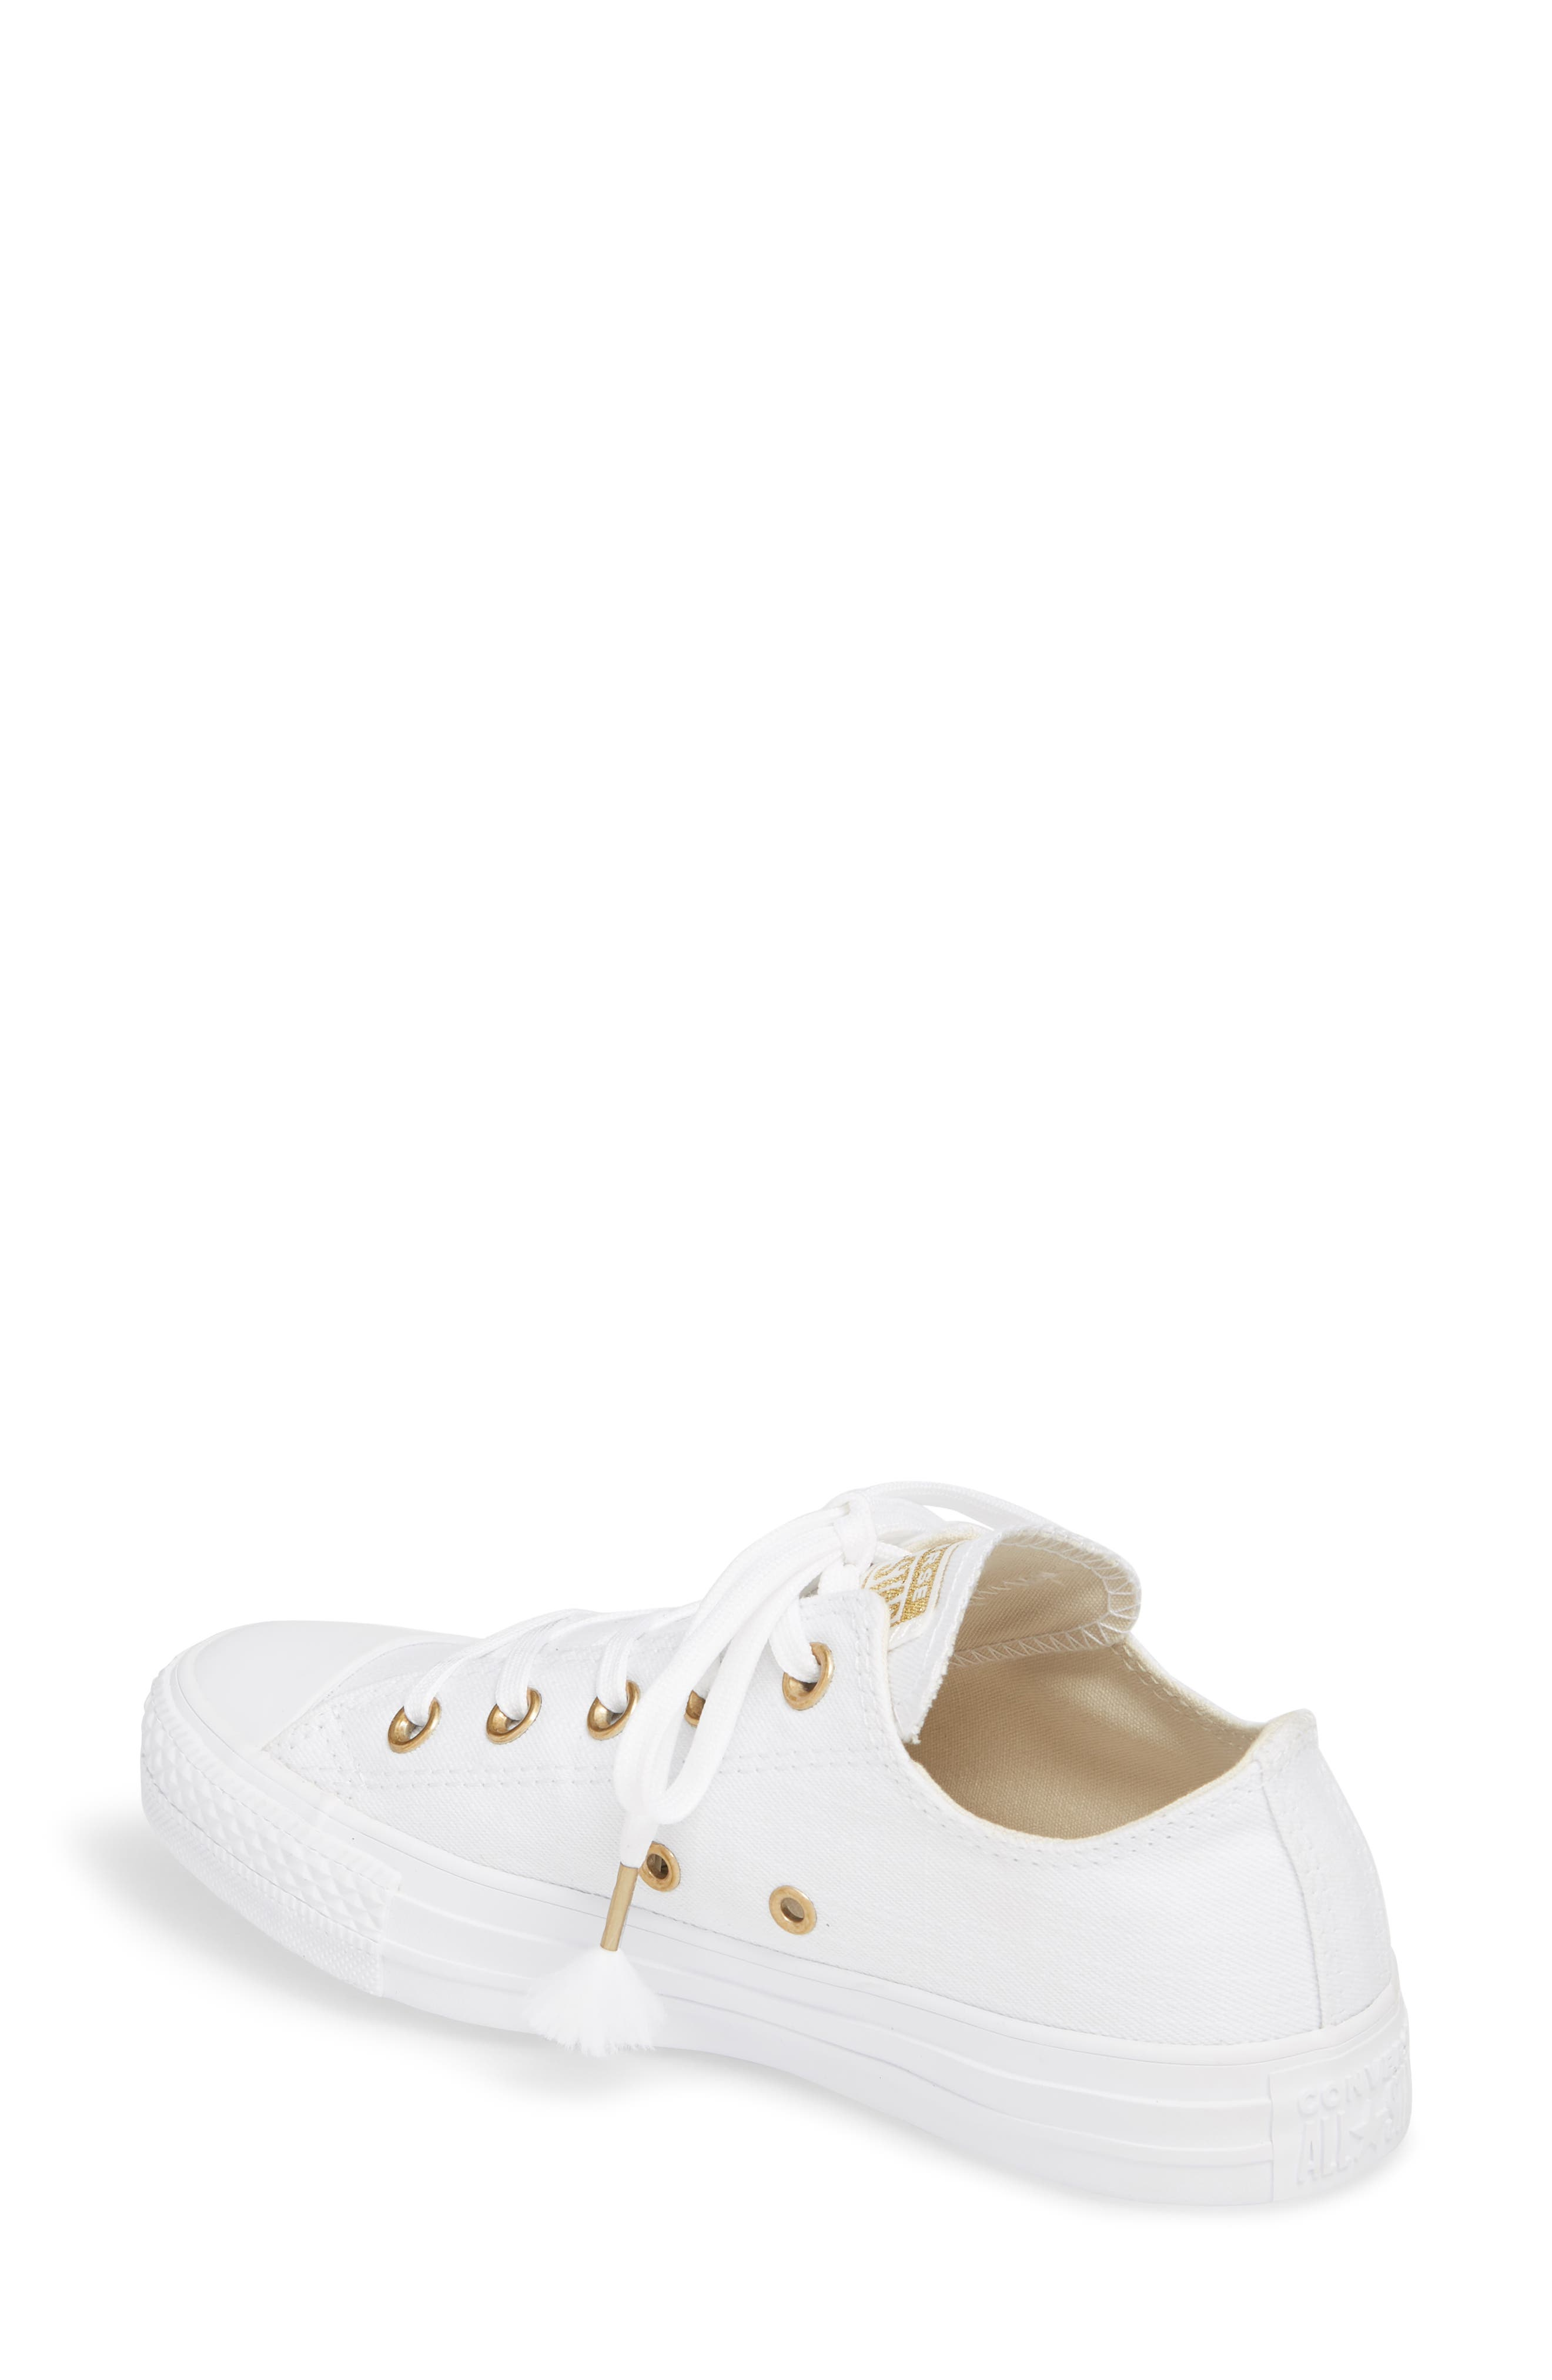 Chuck Taylor<sup>®</sup> All Star<sup>®</sup> Washed Linen Low Top Sneaker,                             Alternate thumbnail 4, color,